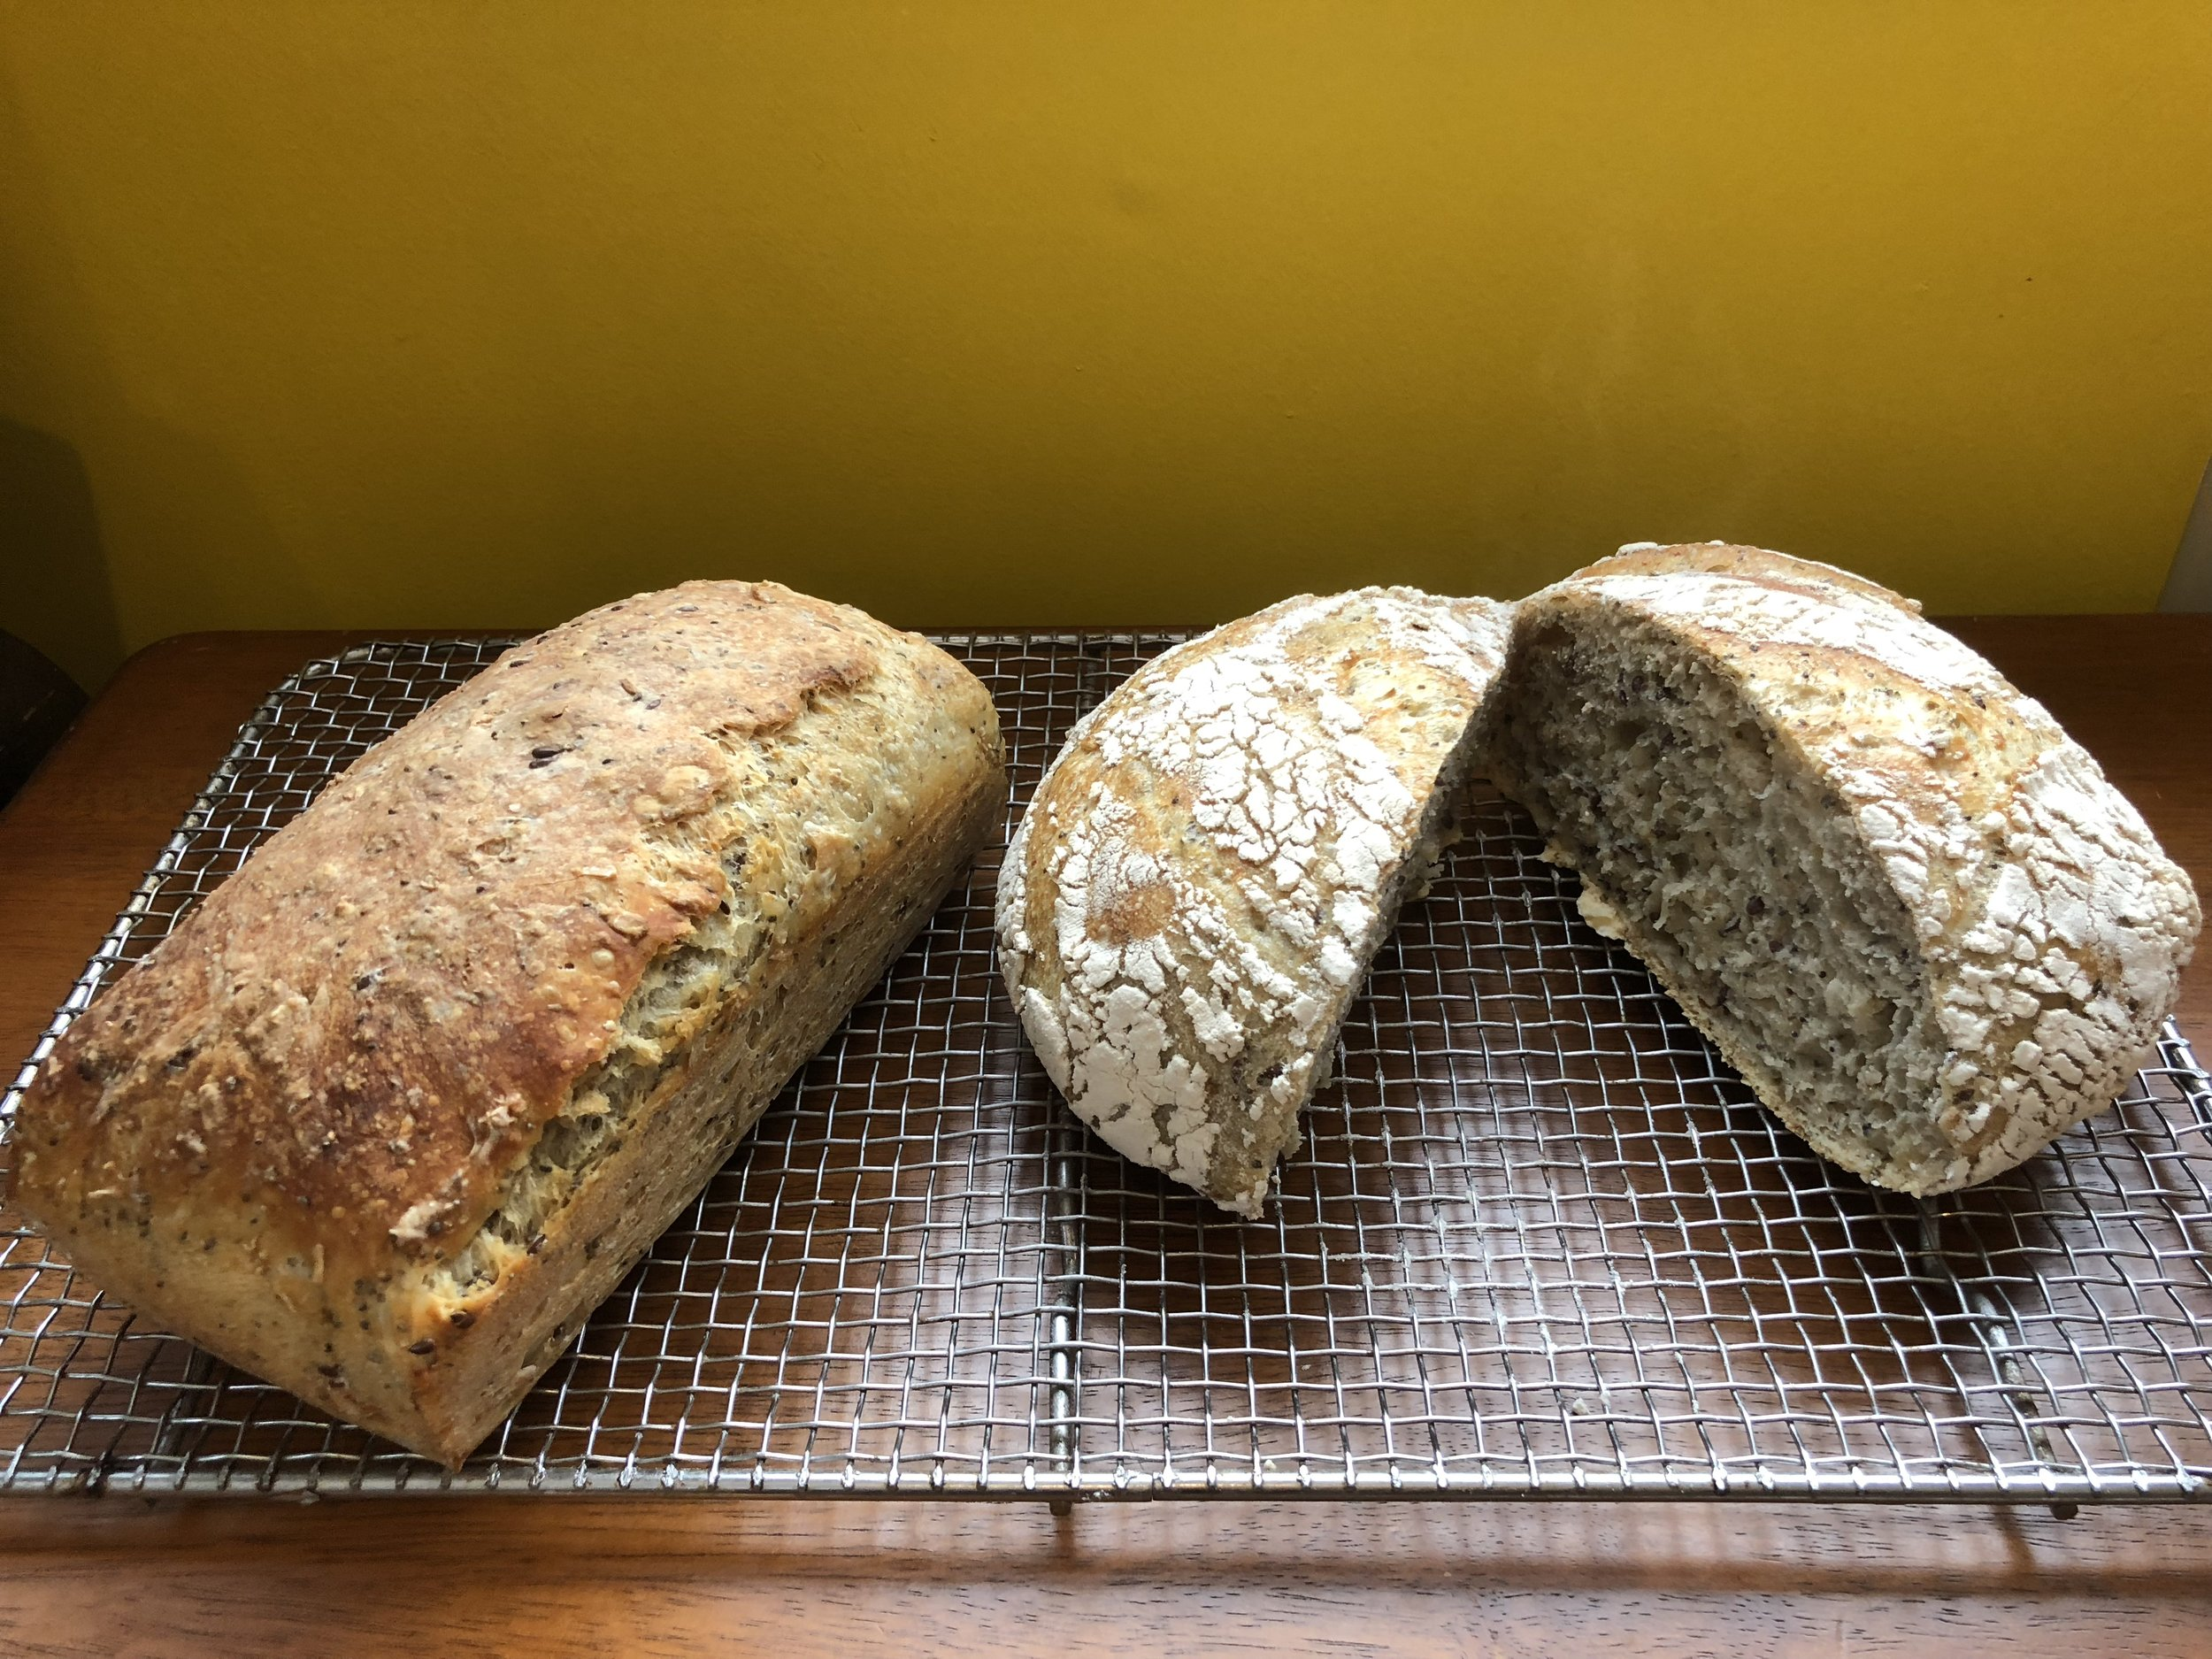 Rommy started making delicious multi-grain bread.